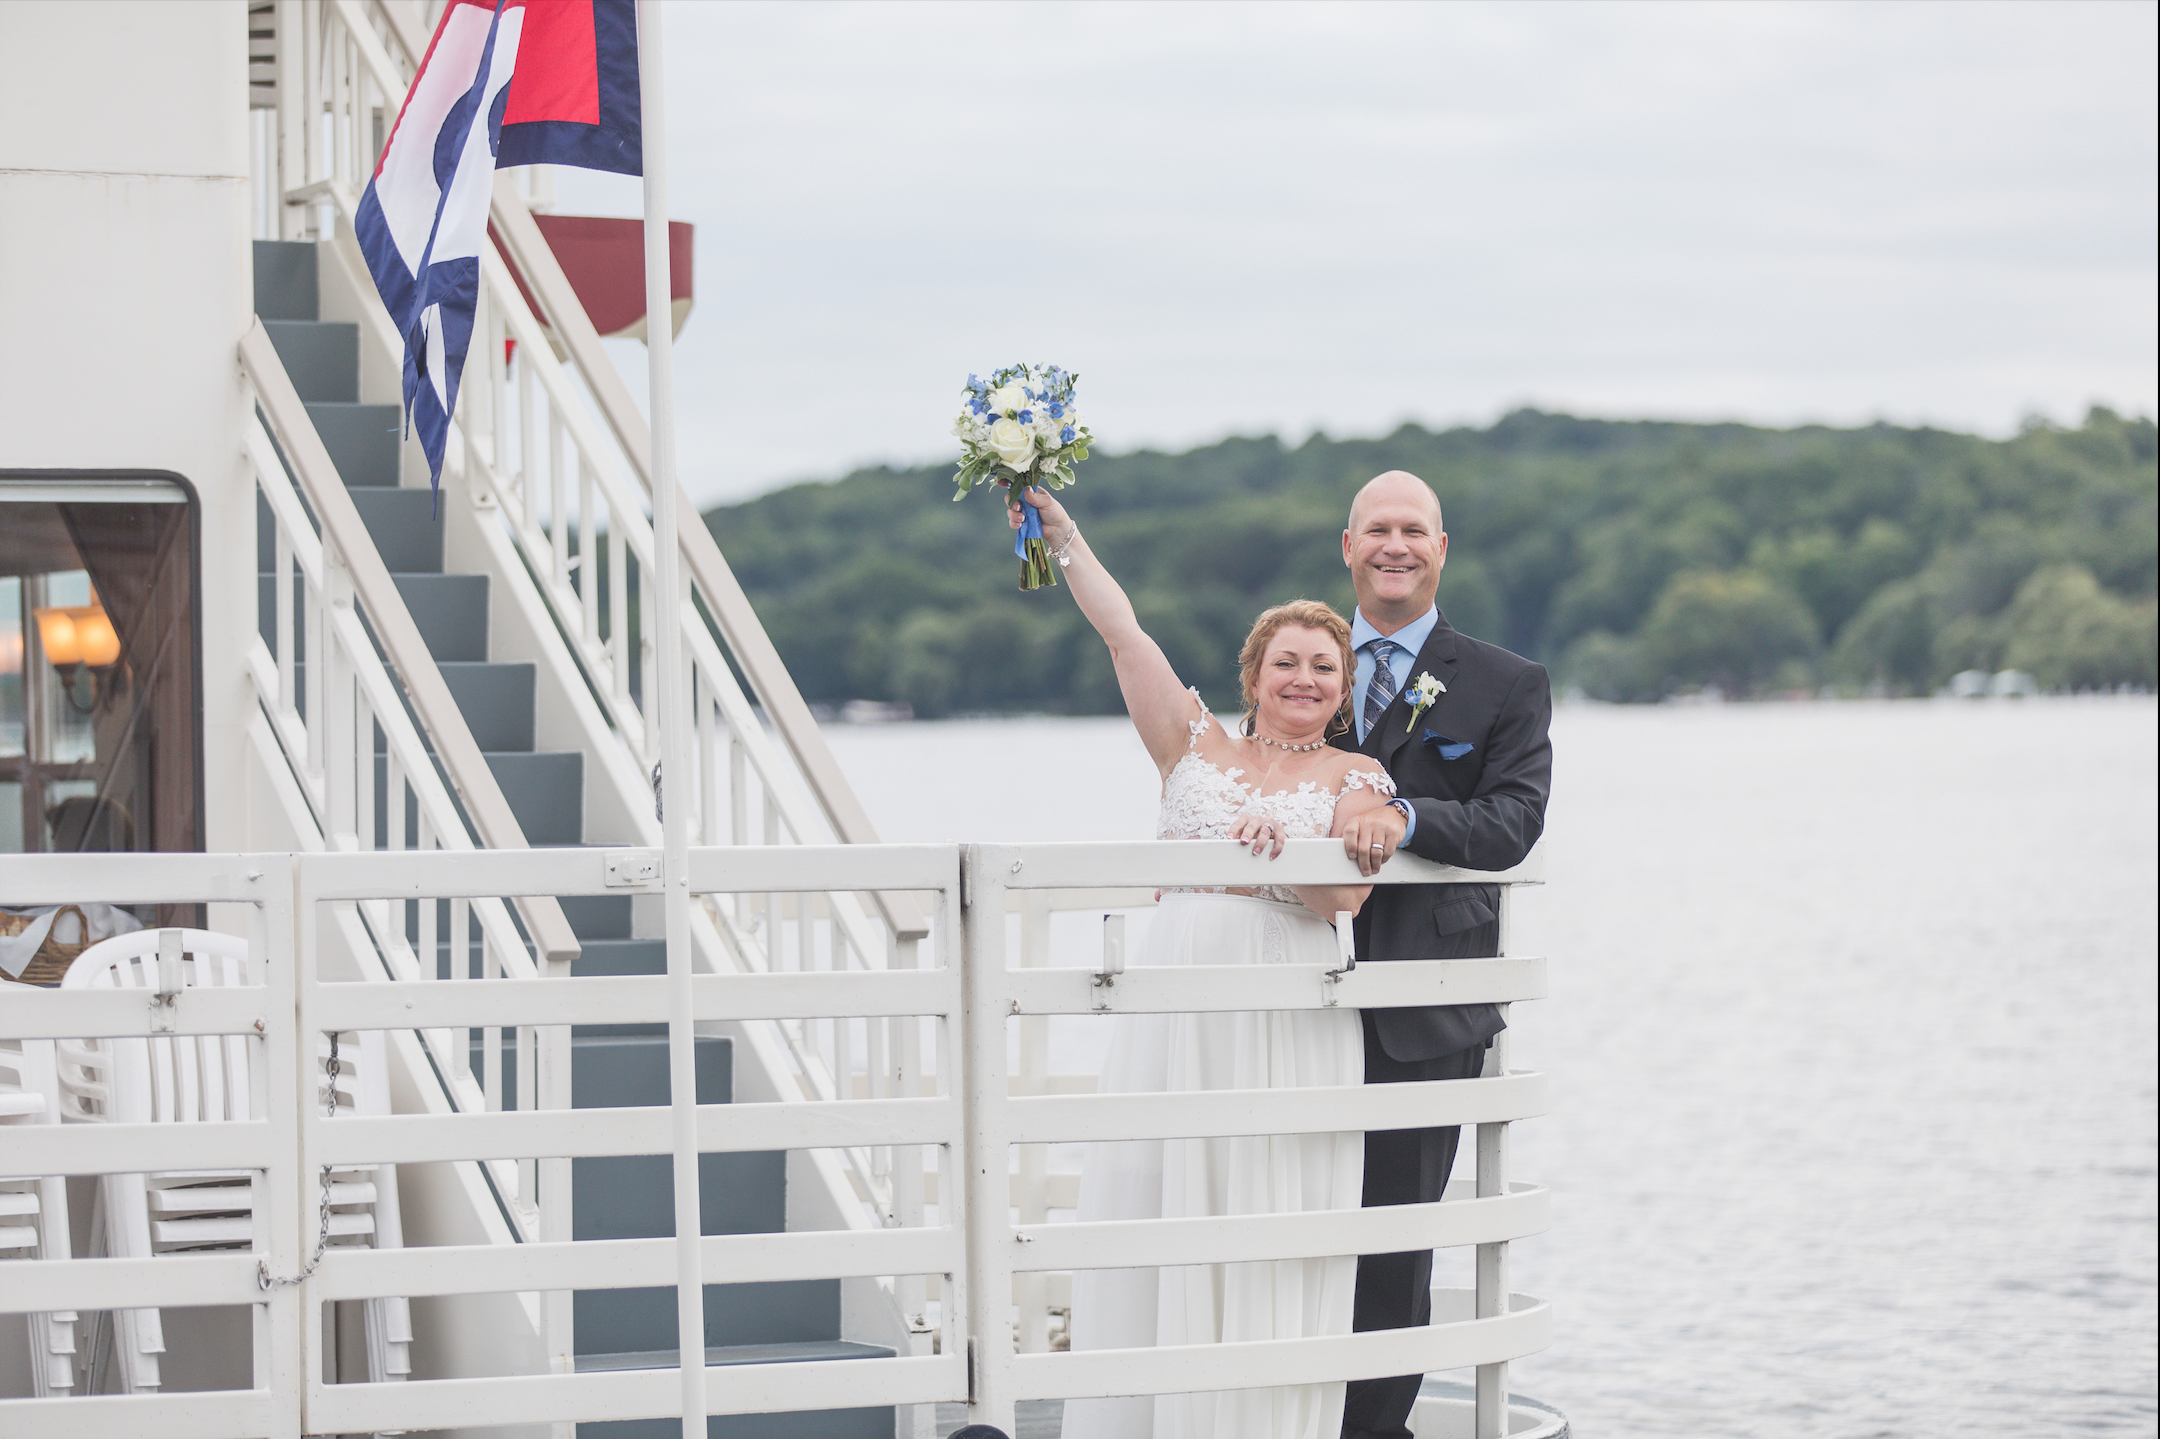 Linda + Rob at Lake Geneva Cruiseline  (July 14, 2017)